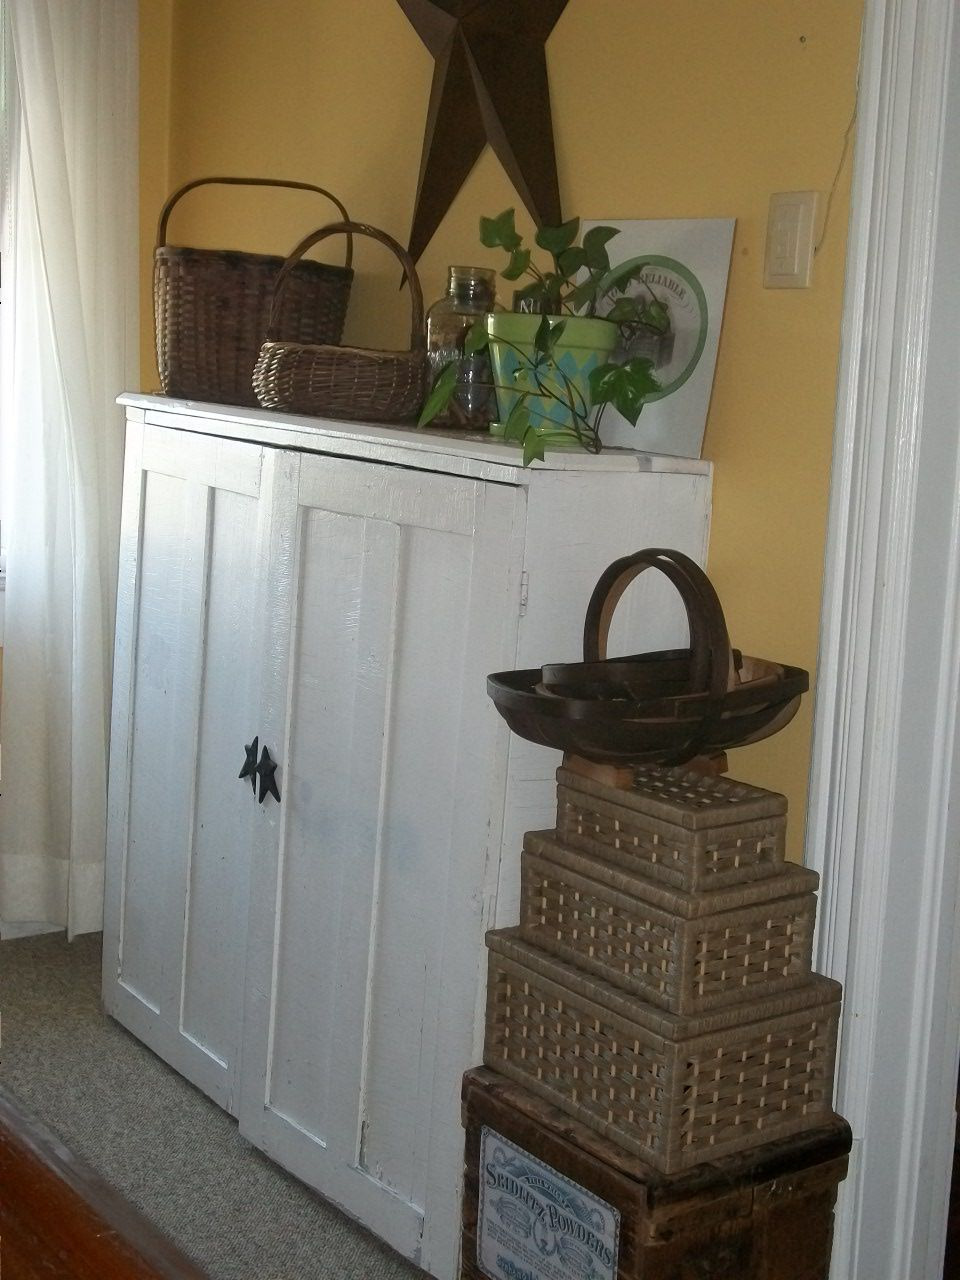 Best Idea Yet For Reusing Old Kitchen Cabinets Use This Idea For The One Up In The Hall By Girls Old Kitchen Cabinets Redo Furniture Cabinet Doors Repurposed